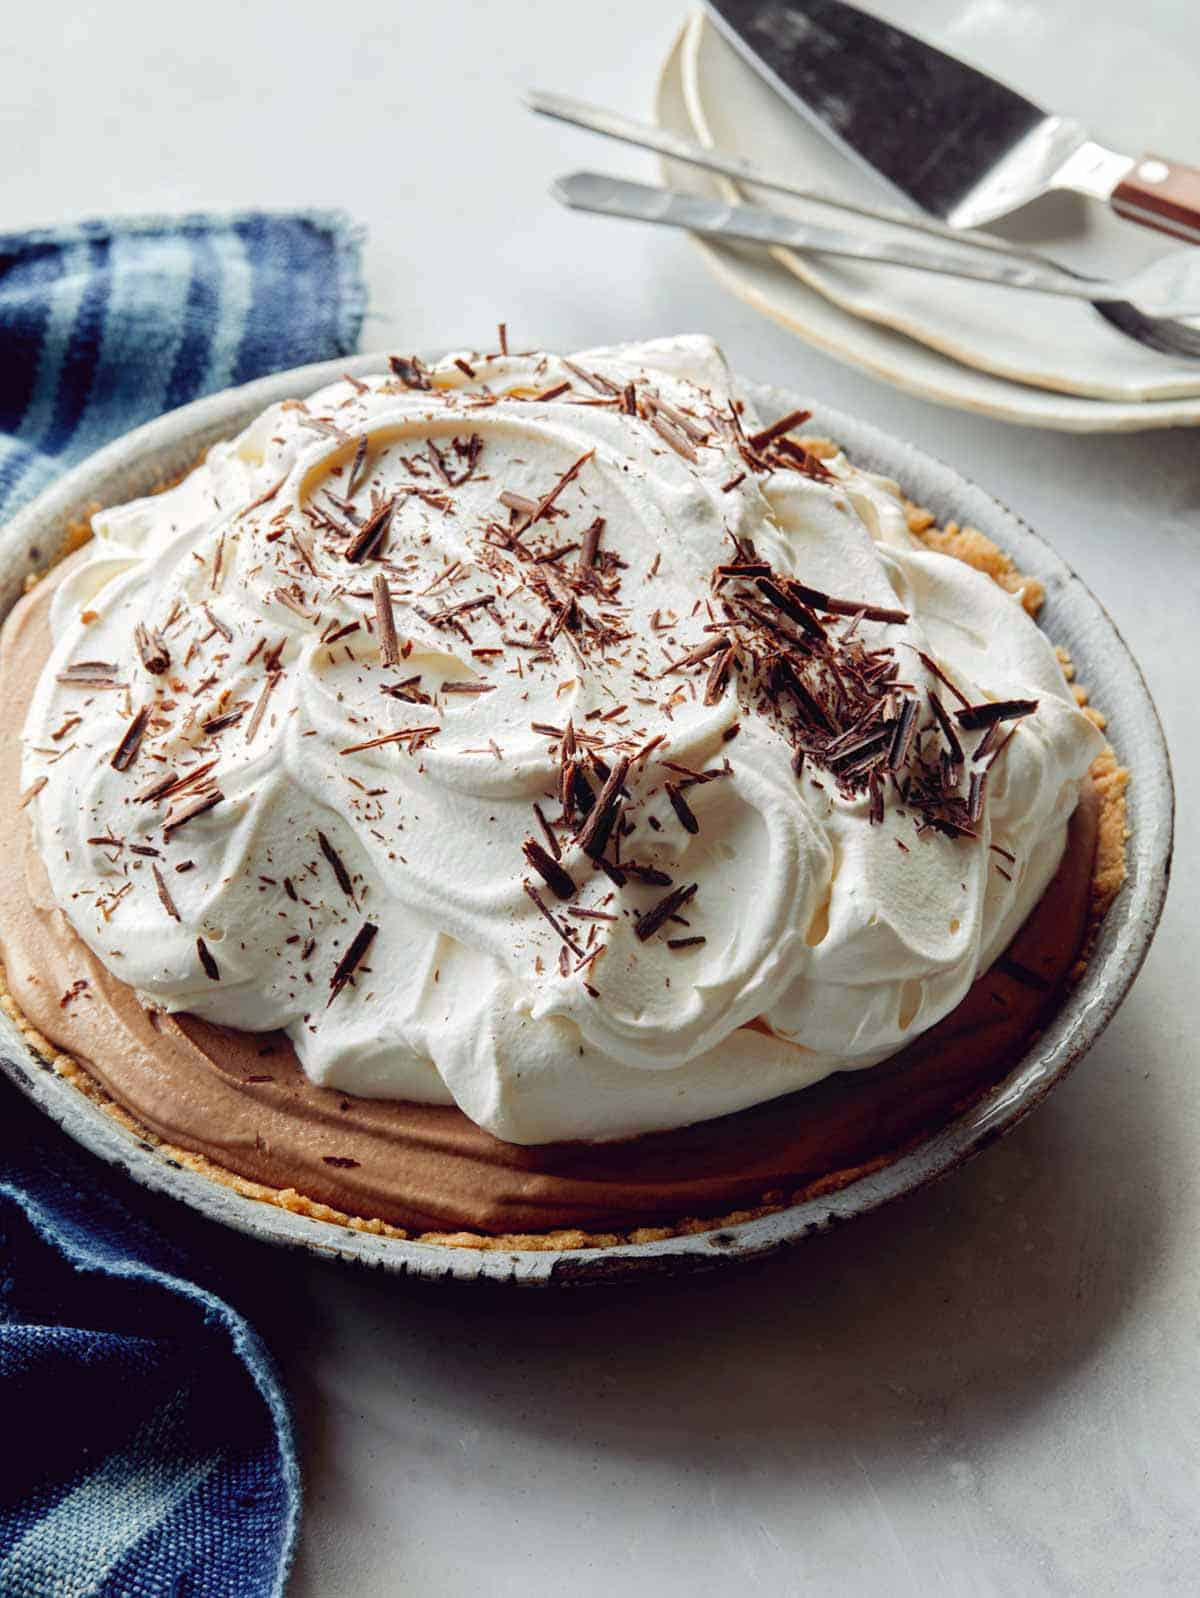 A whole french silk pie with some plates in the background.